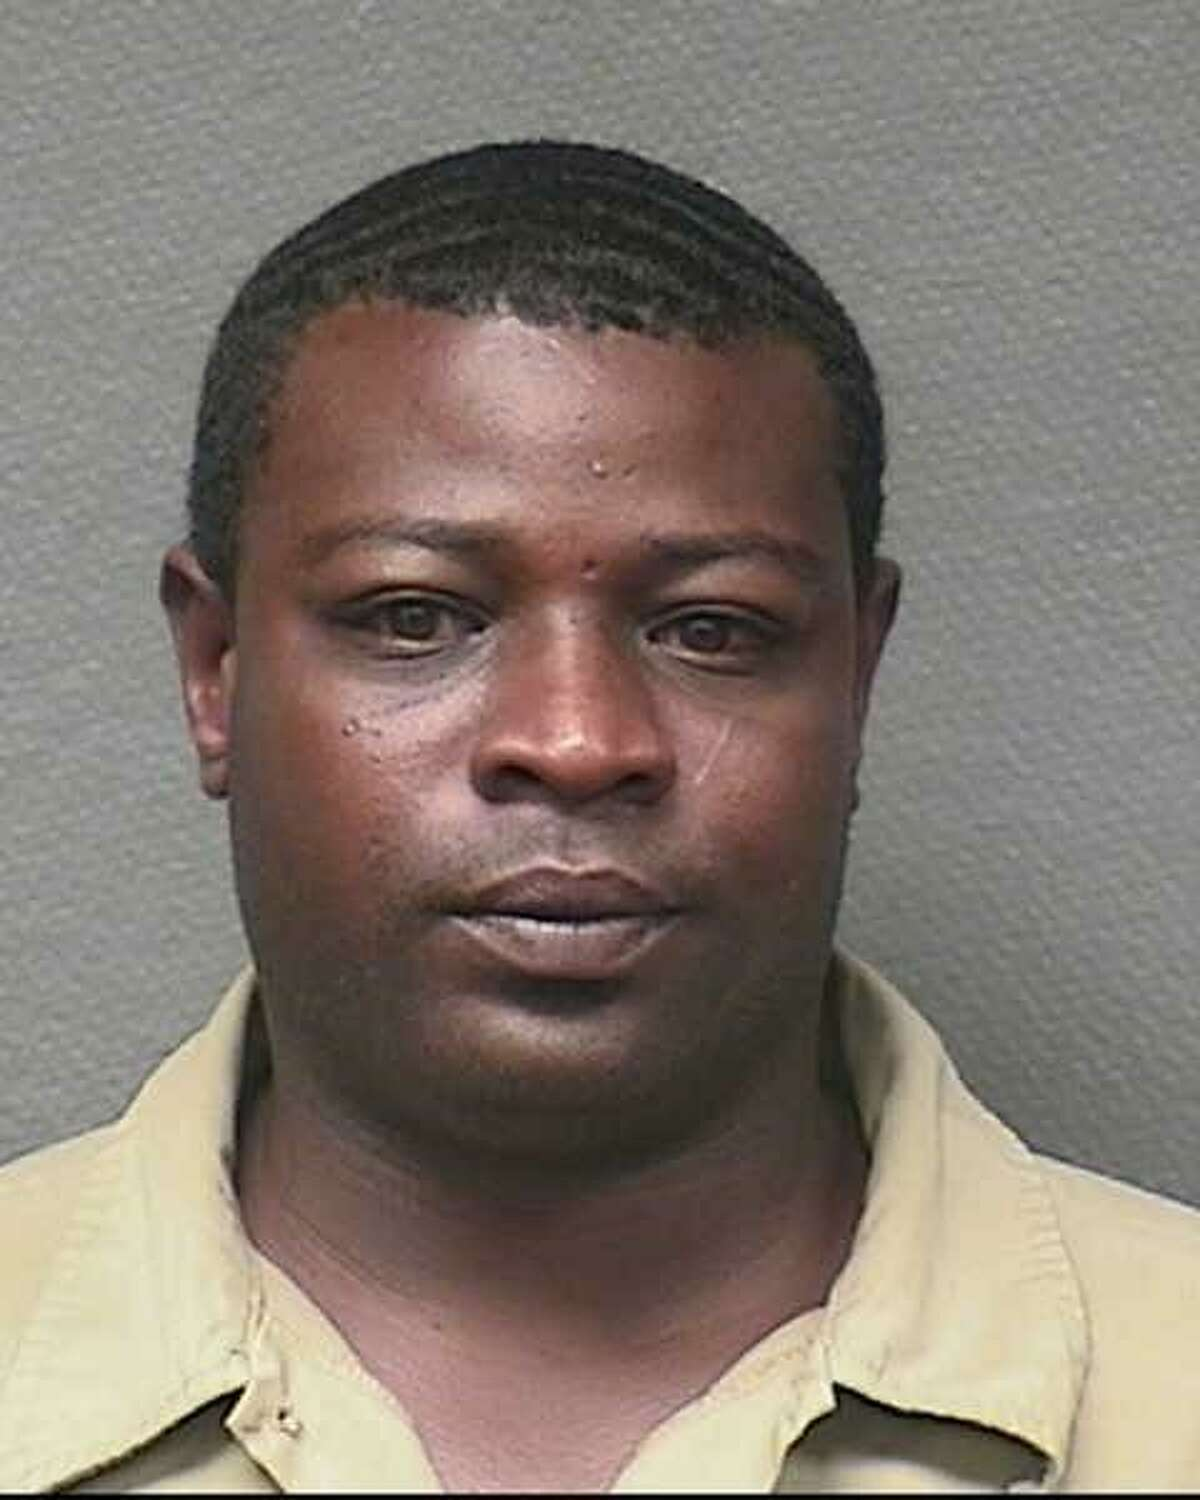 Michael Robertson is wanted for burning a car so his brother could claim it on his insurance as stolen, according to Crime Stoppers. Investigators found the vehicle was burned before being reported as stolen.